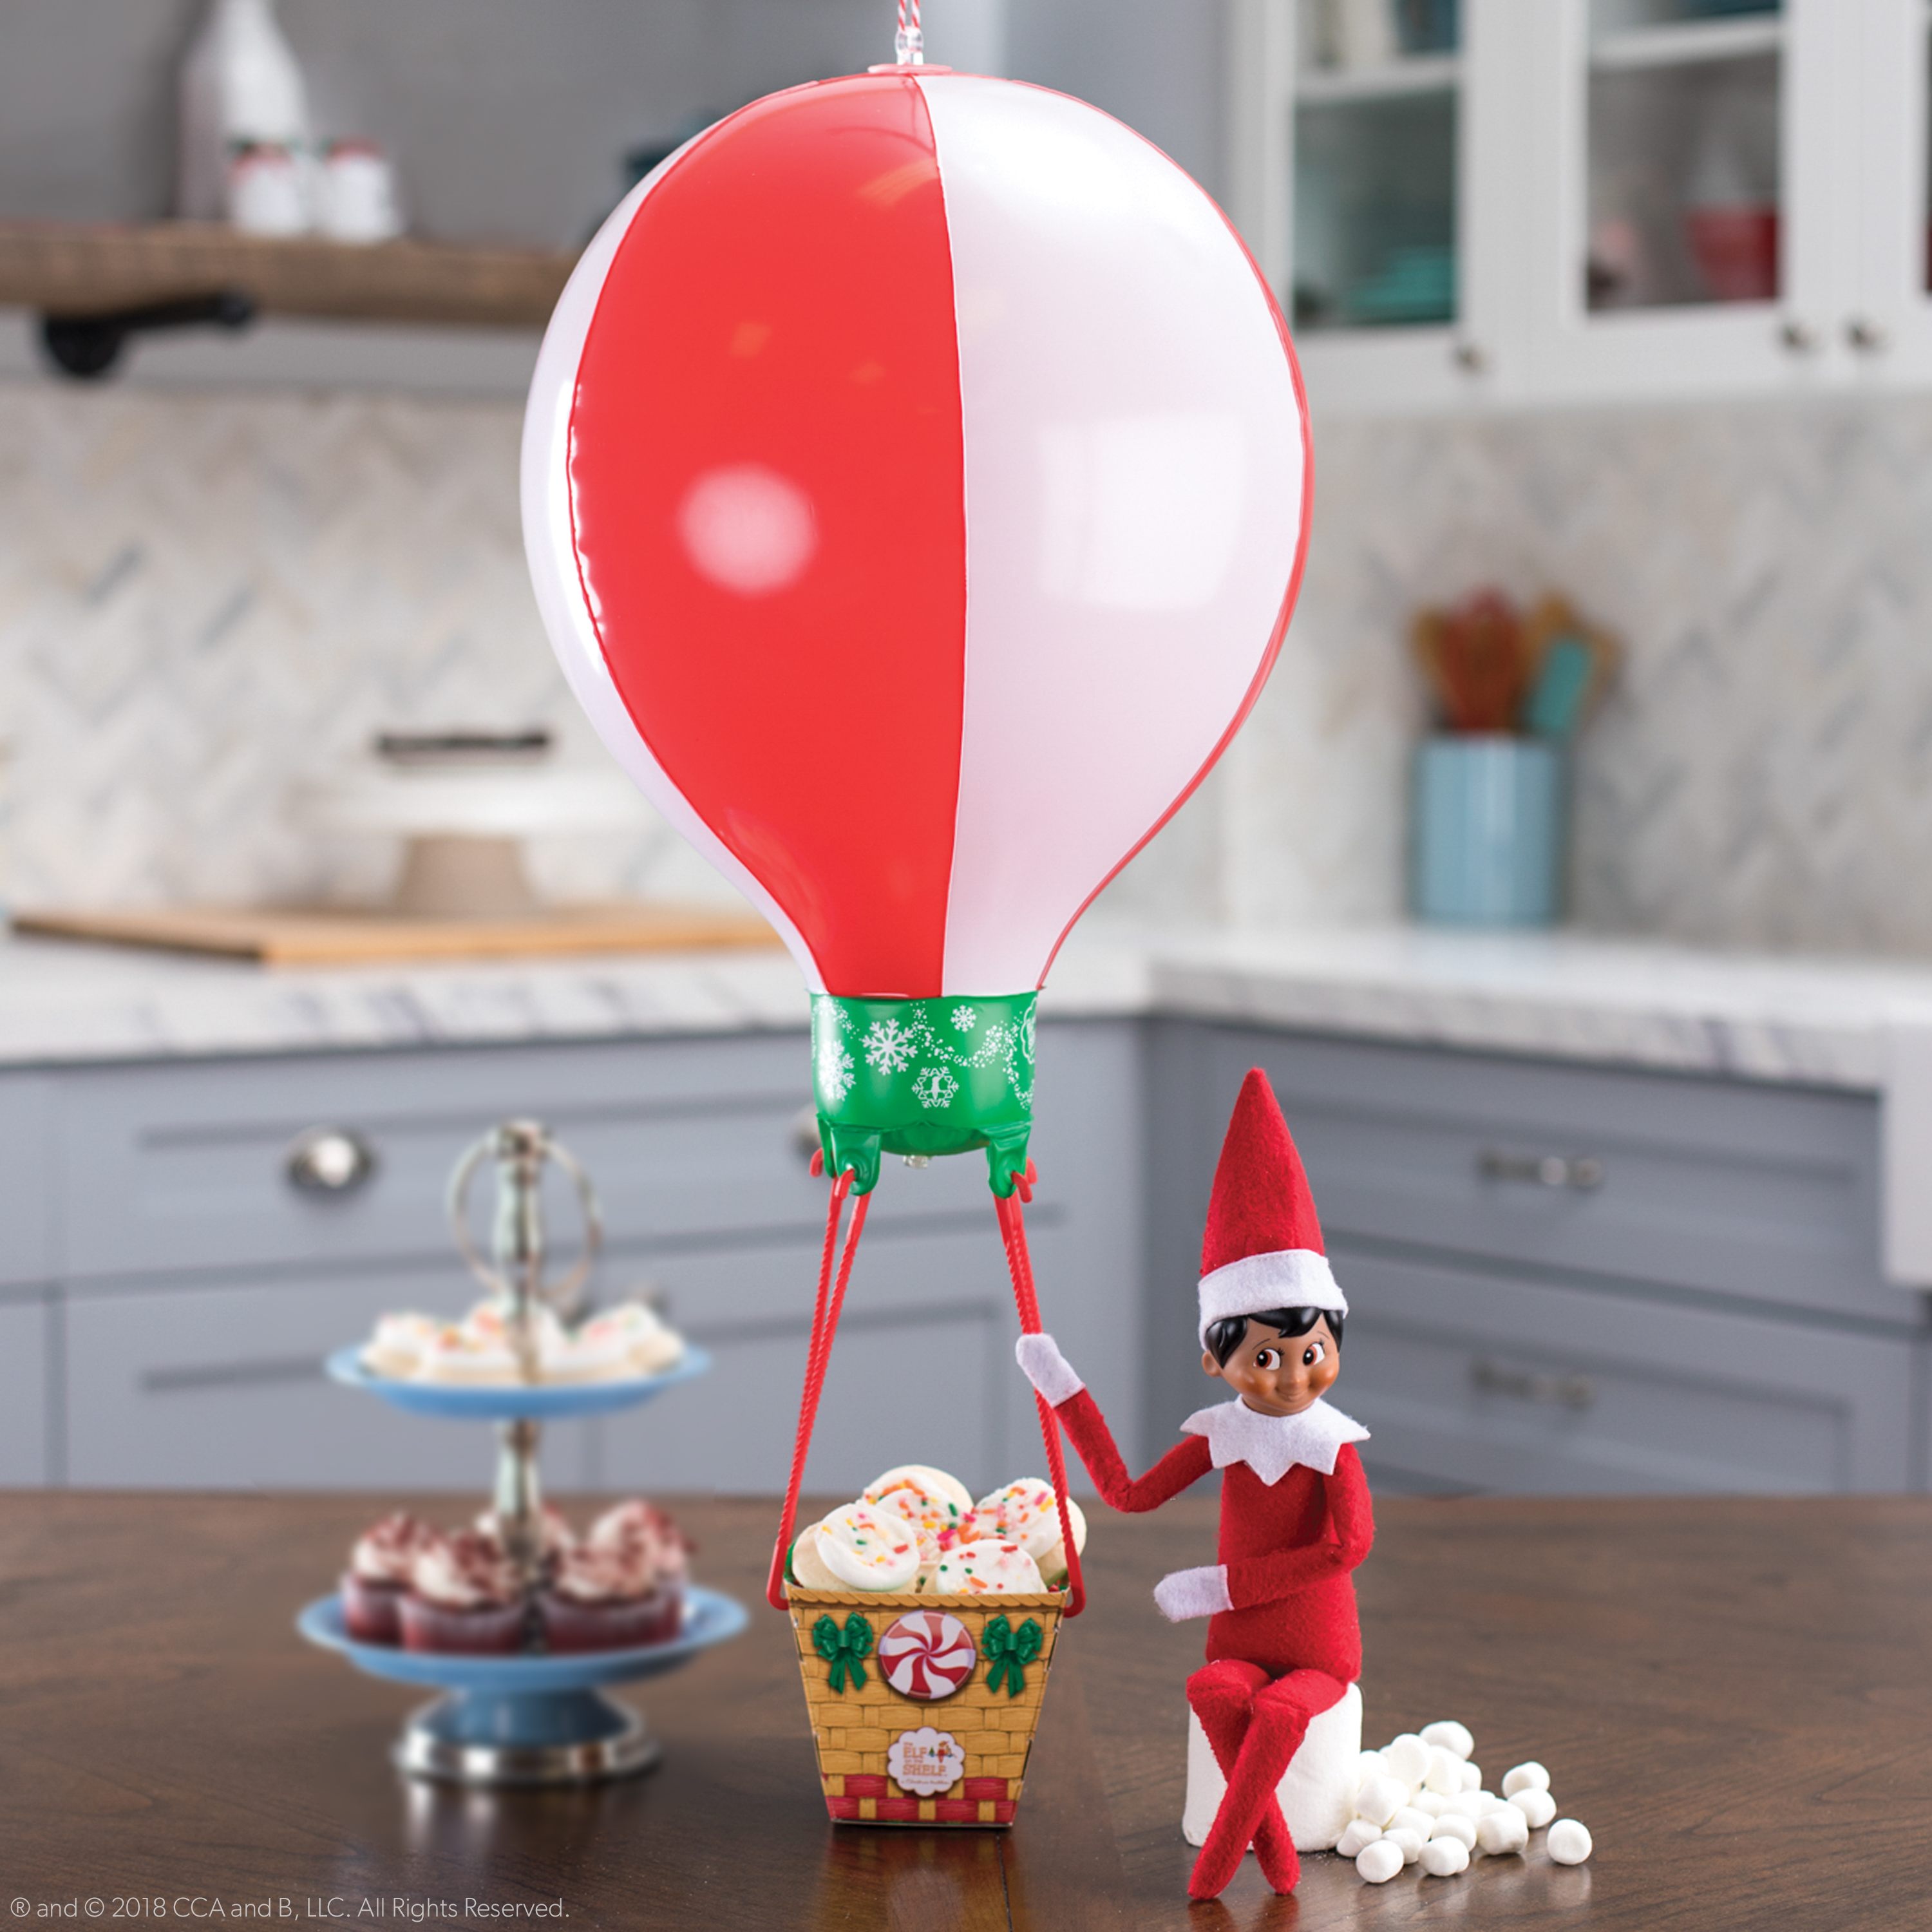 Scout Elves at Play Balloon Ride